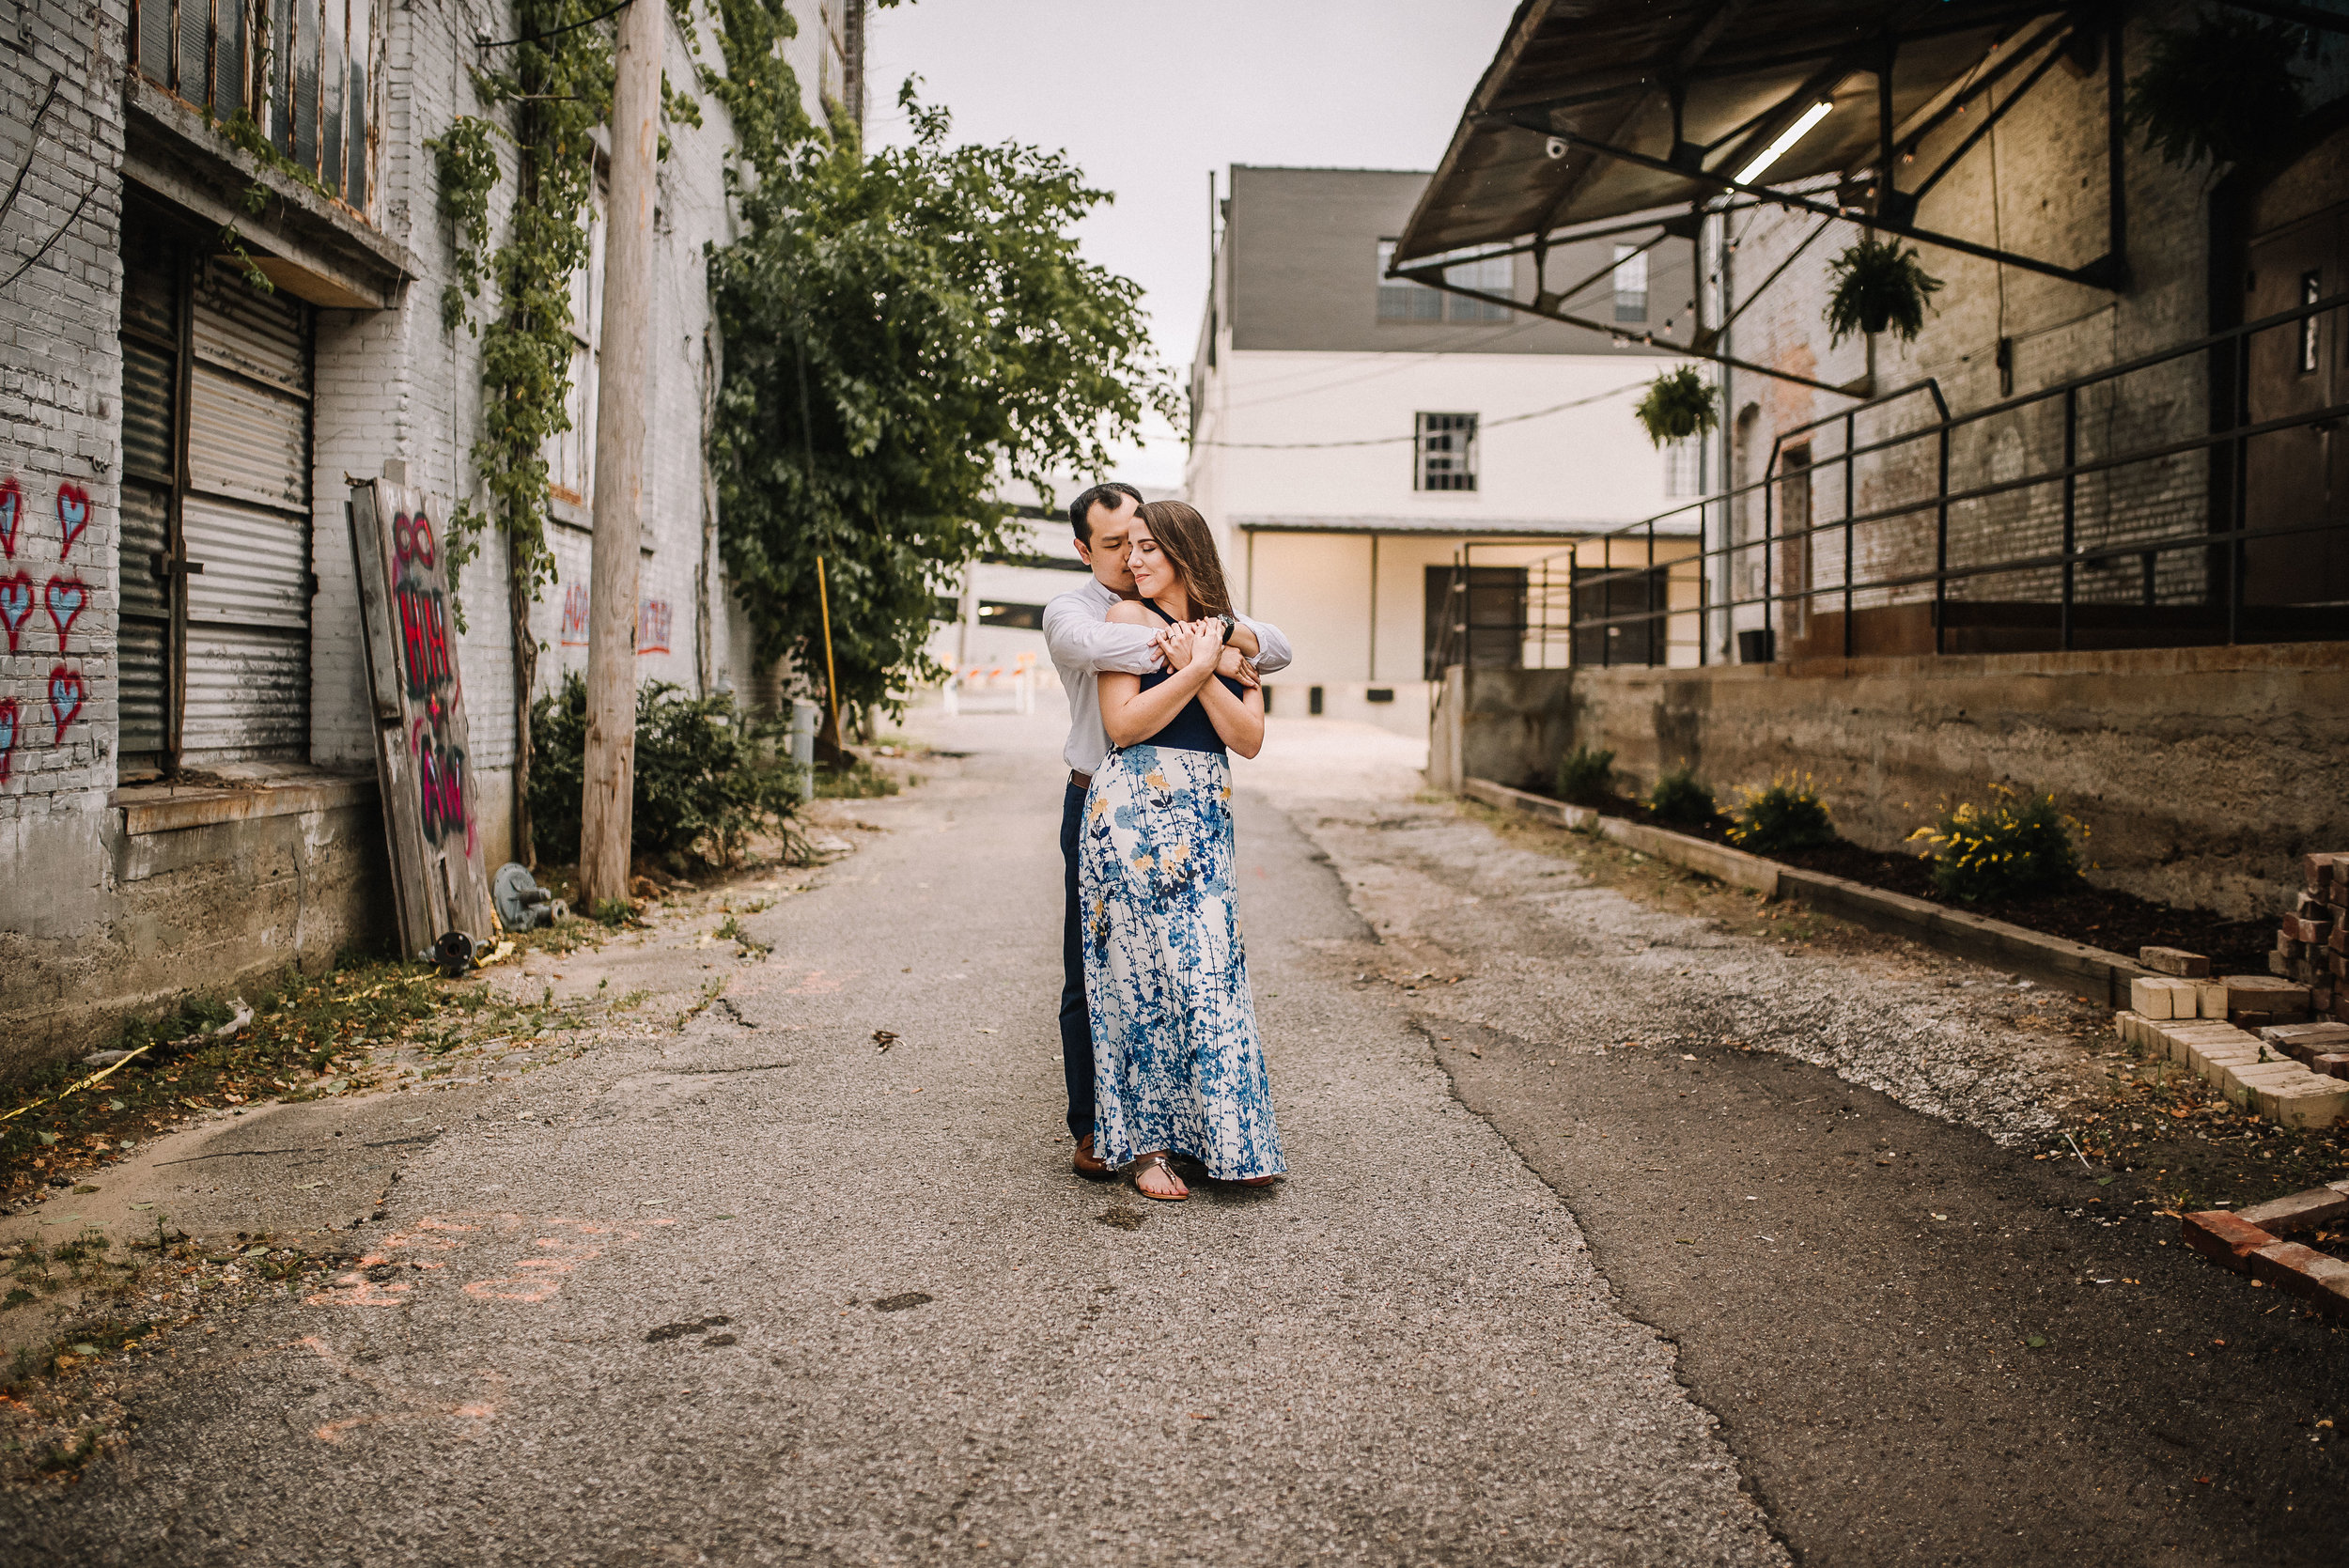 Jenny&Patrick_Downtown Memphis Engagement_Ashley Benham Photography-62.jpg